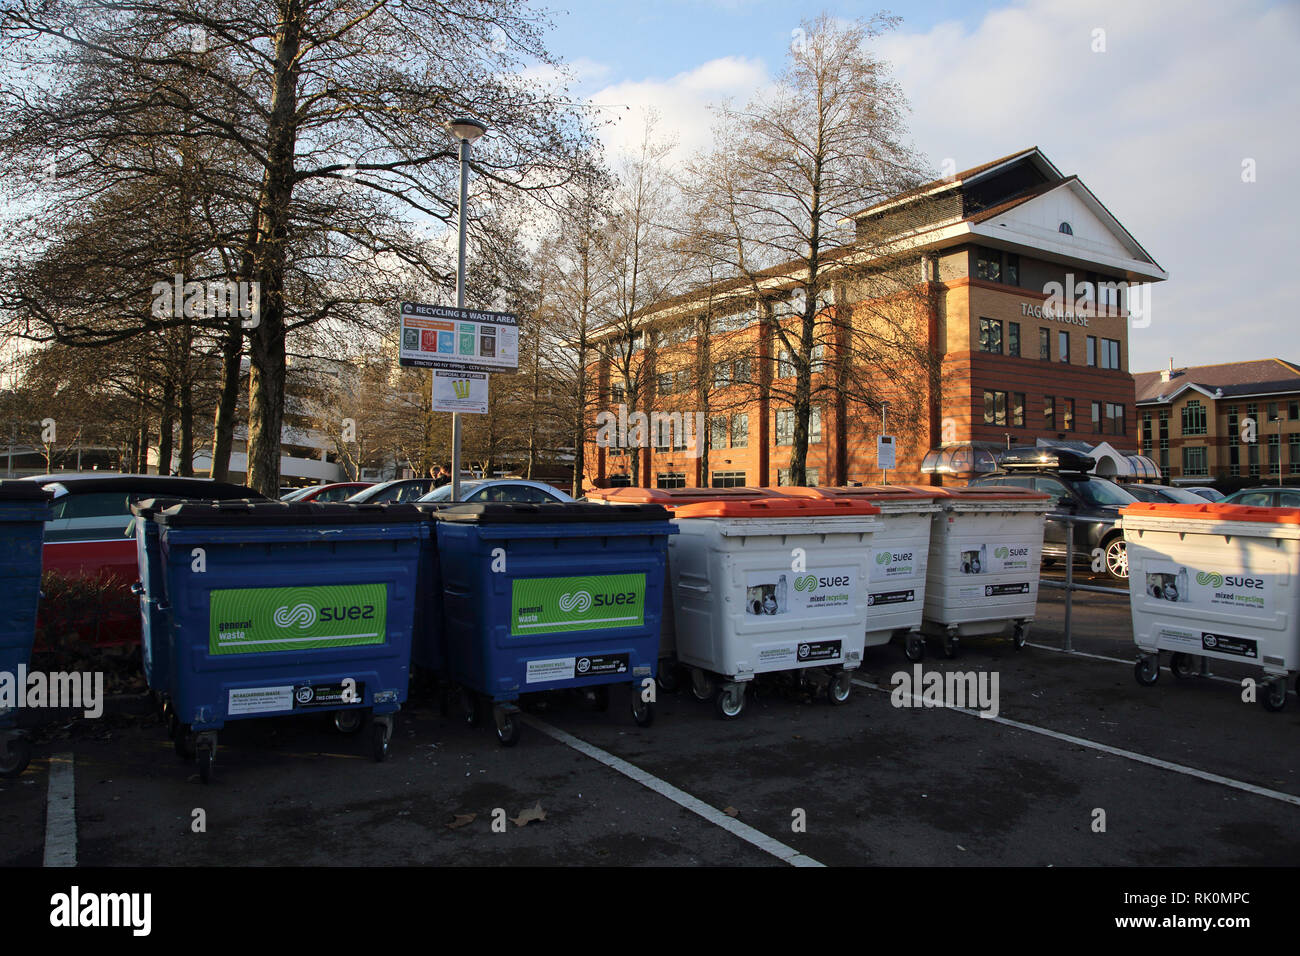 Ocean Village Southampton Hampshire England Recycling and Waste Area - Stock Image